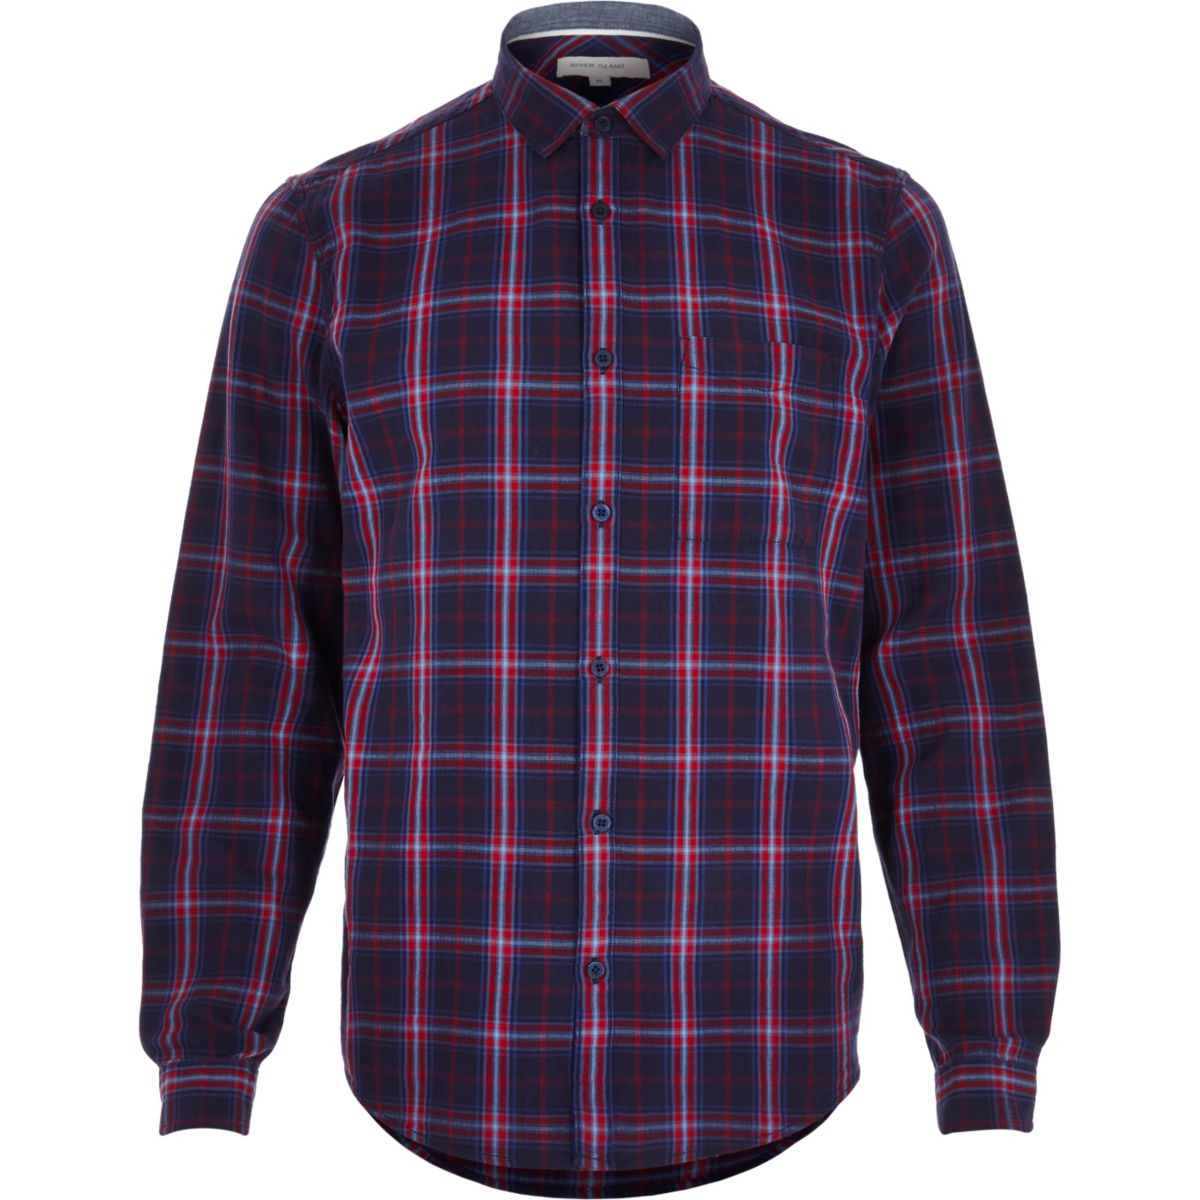 Find great deals on eBay for purple white check shirt. Shop with confidence.